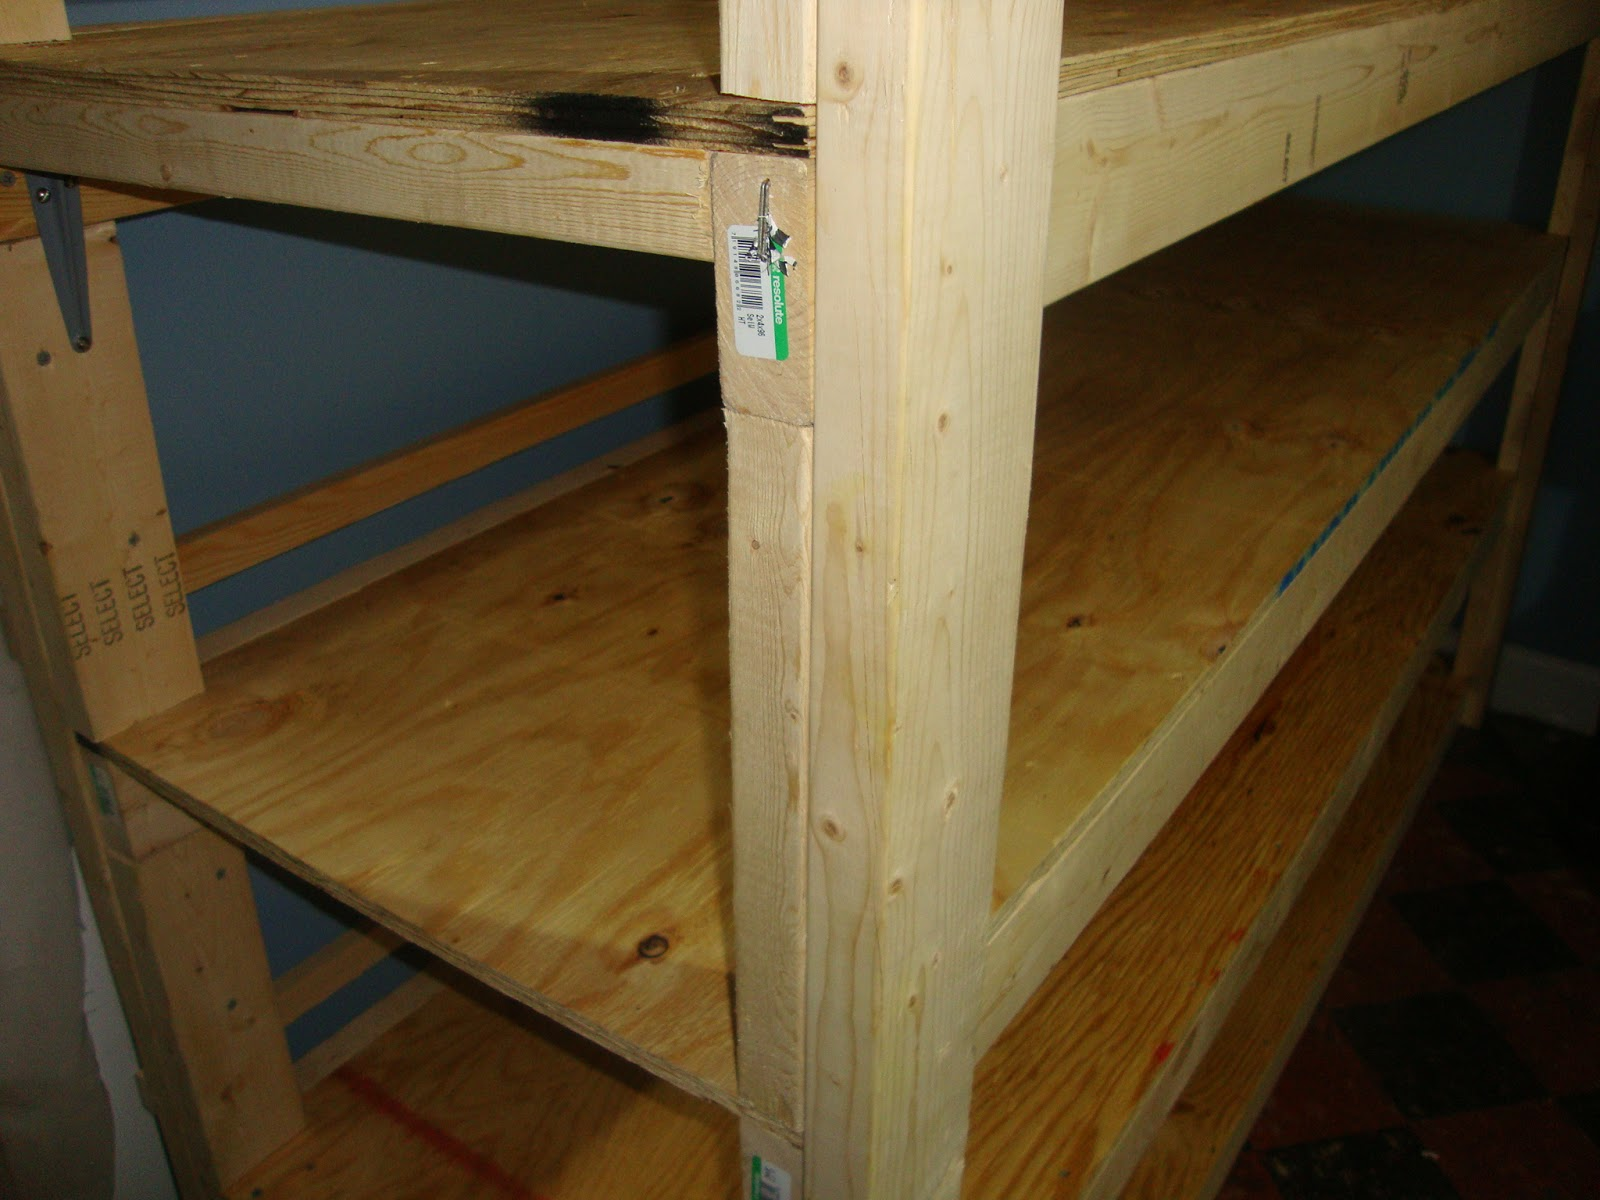 Bob S Practical Prepping Build Wood Shelves For Your Food Storage